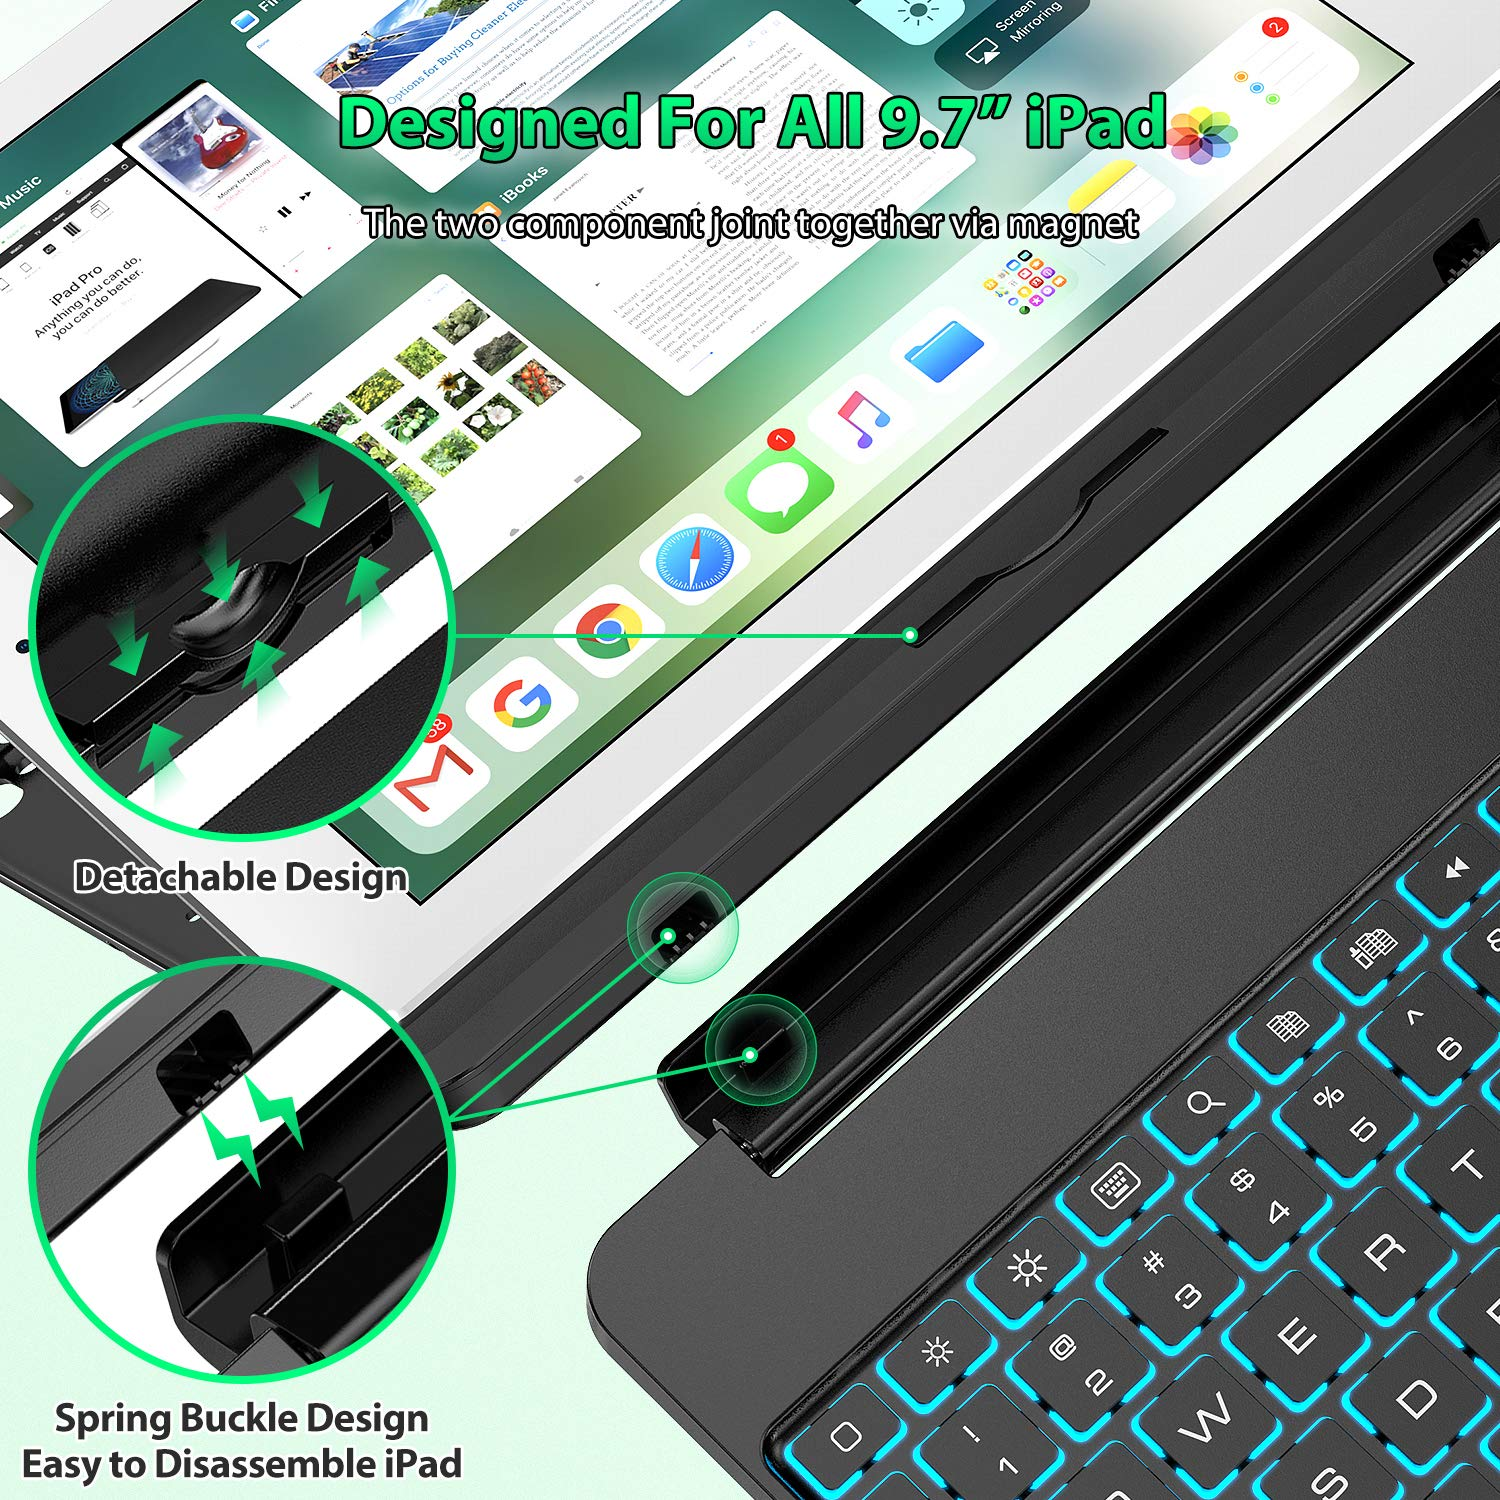 Keyboard Case Compatible with iPad 2018 (6th Gen), iPad 2017 (5th Gen), iPad Pro 9.7,'' and iPad Air 1 and 2 - Features Detachable Design, Rotating Hinge and Adjustable Backlight (Black) by Tezzionas (Image #9)